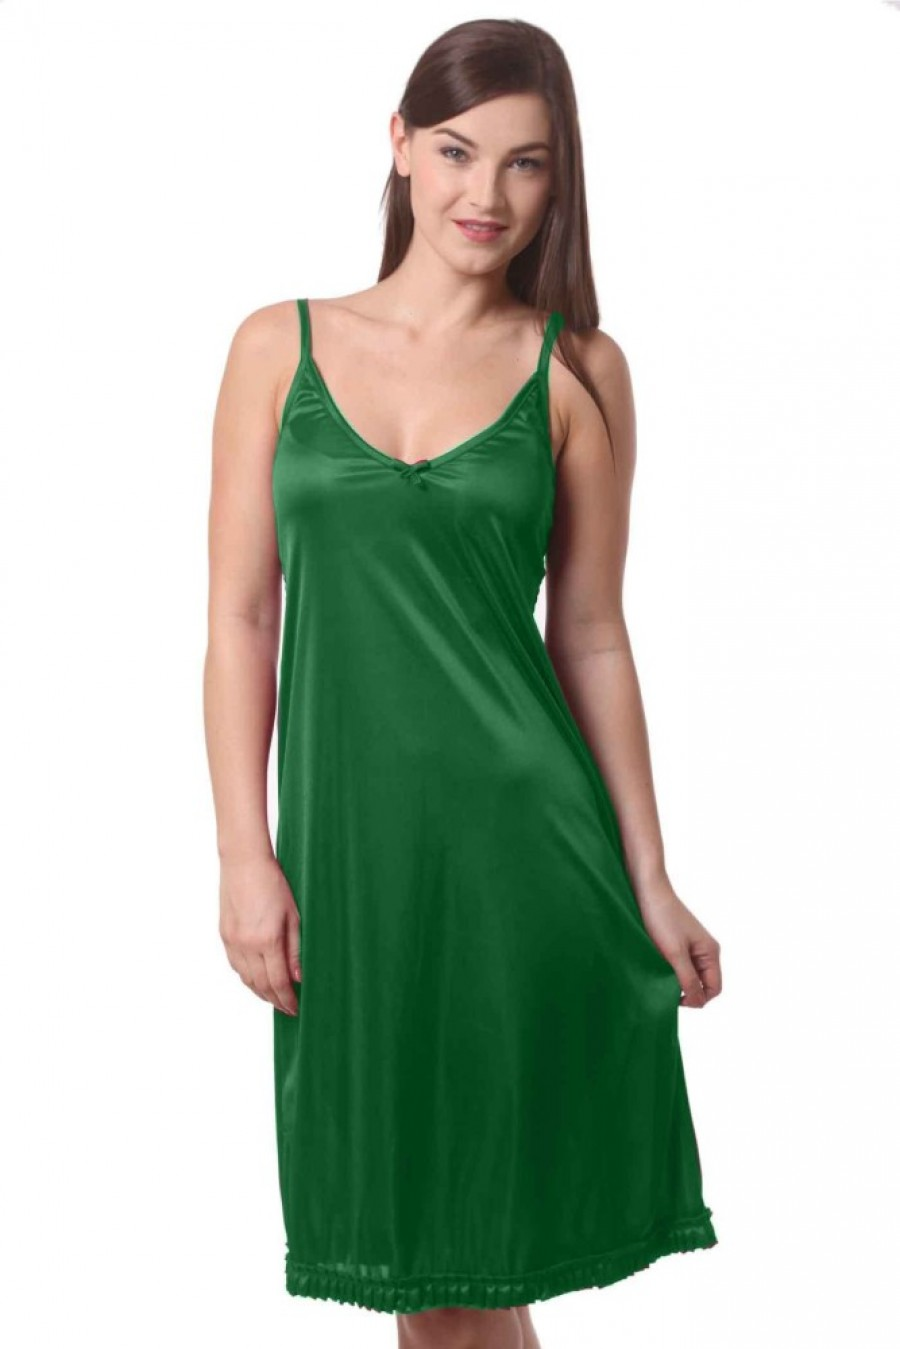 Buy Being Fab Womens Nighty Online. View full size 23189a1af